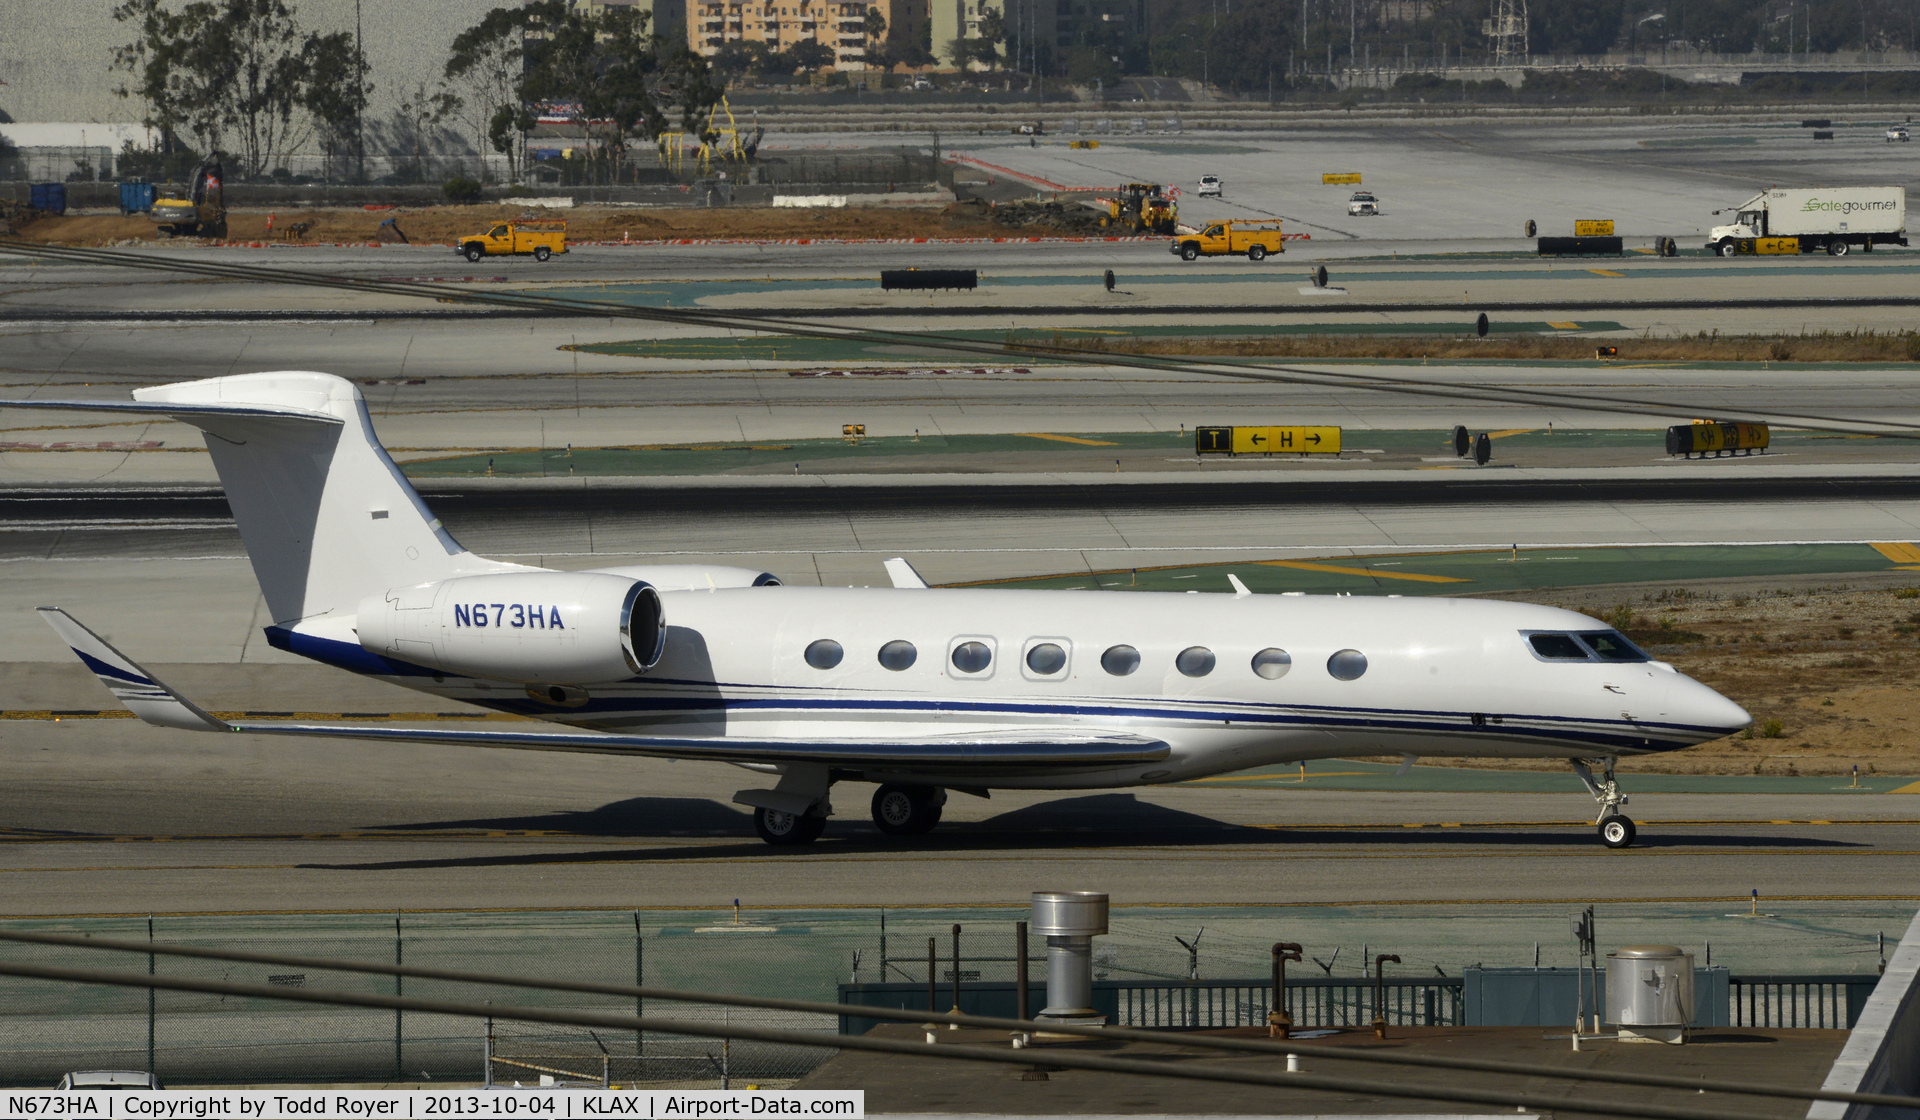 N673HA, 2013 Gulfstream VI G650 C/N 6018, Taxiing to parking at LAX